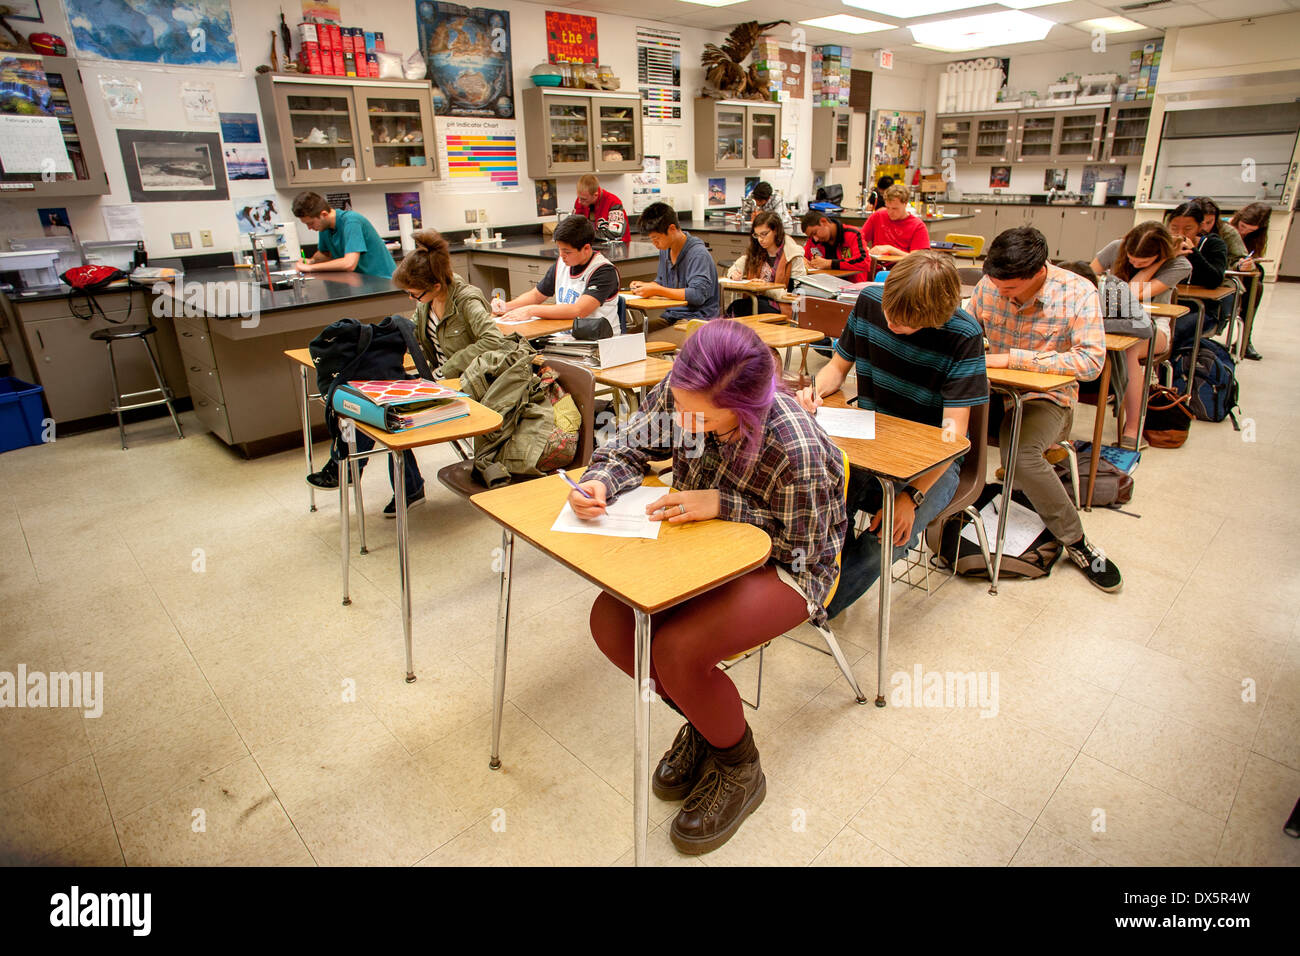 Teen high school chemistry students taking a classroom examination in San Clemente, CA. Note purple hair. - Stock Image